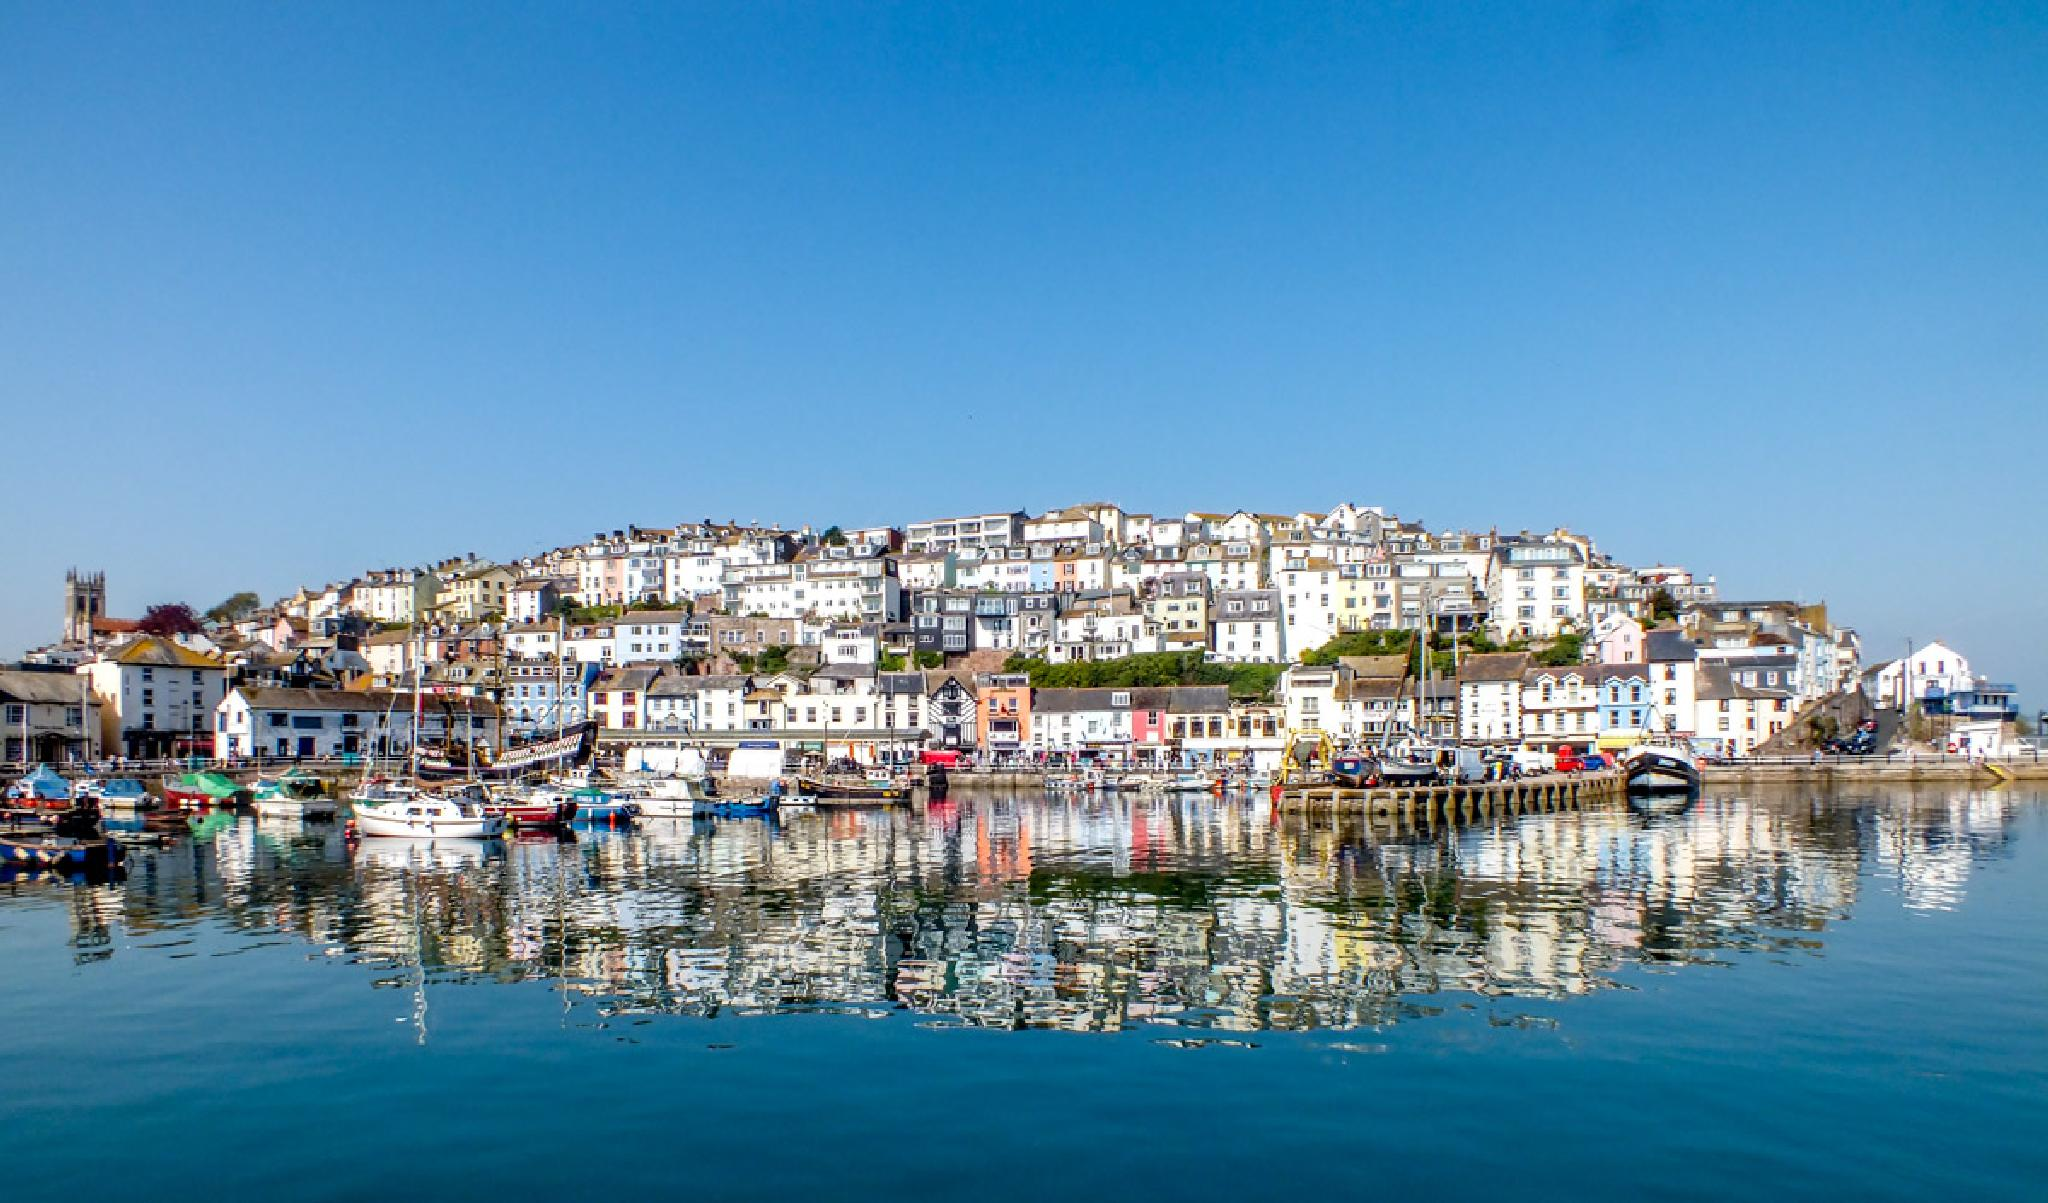 Brixham Devon UK in the sunshine by MarkBriscoe